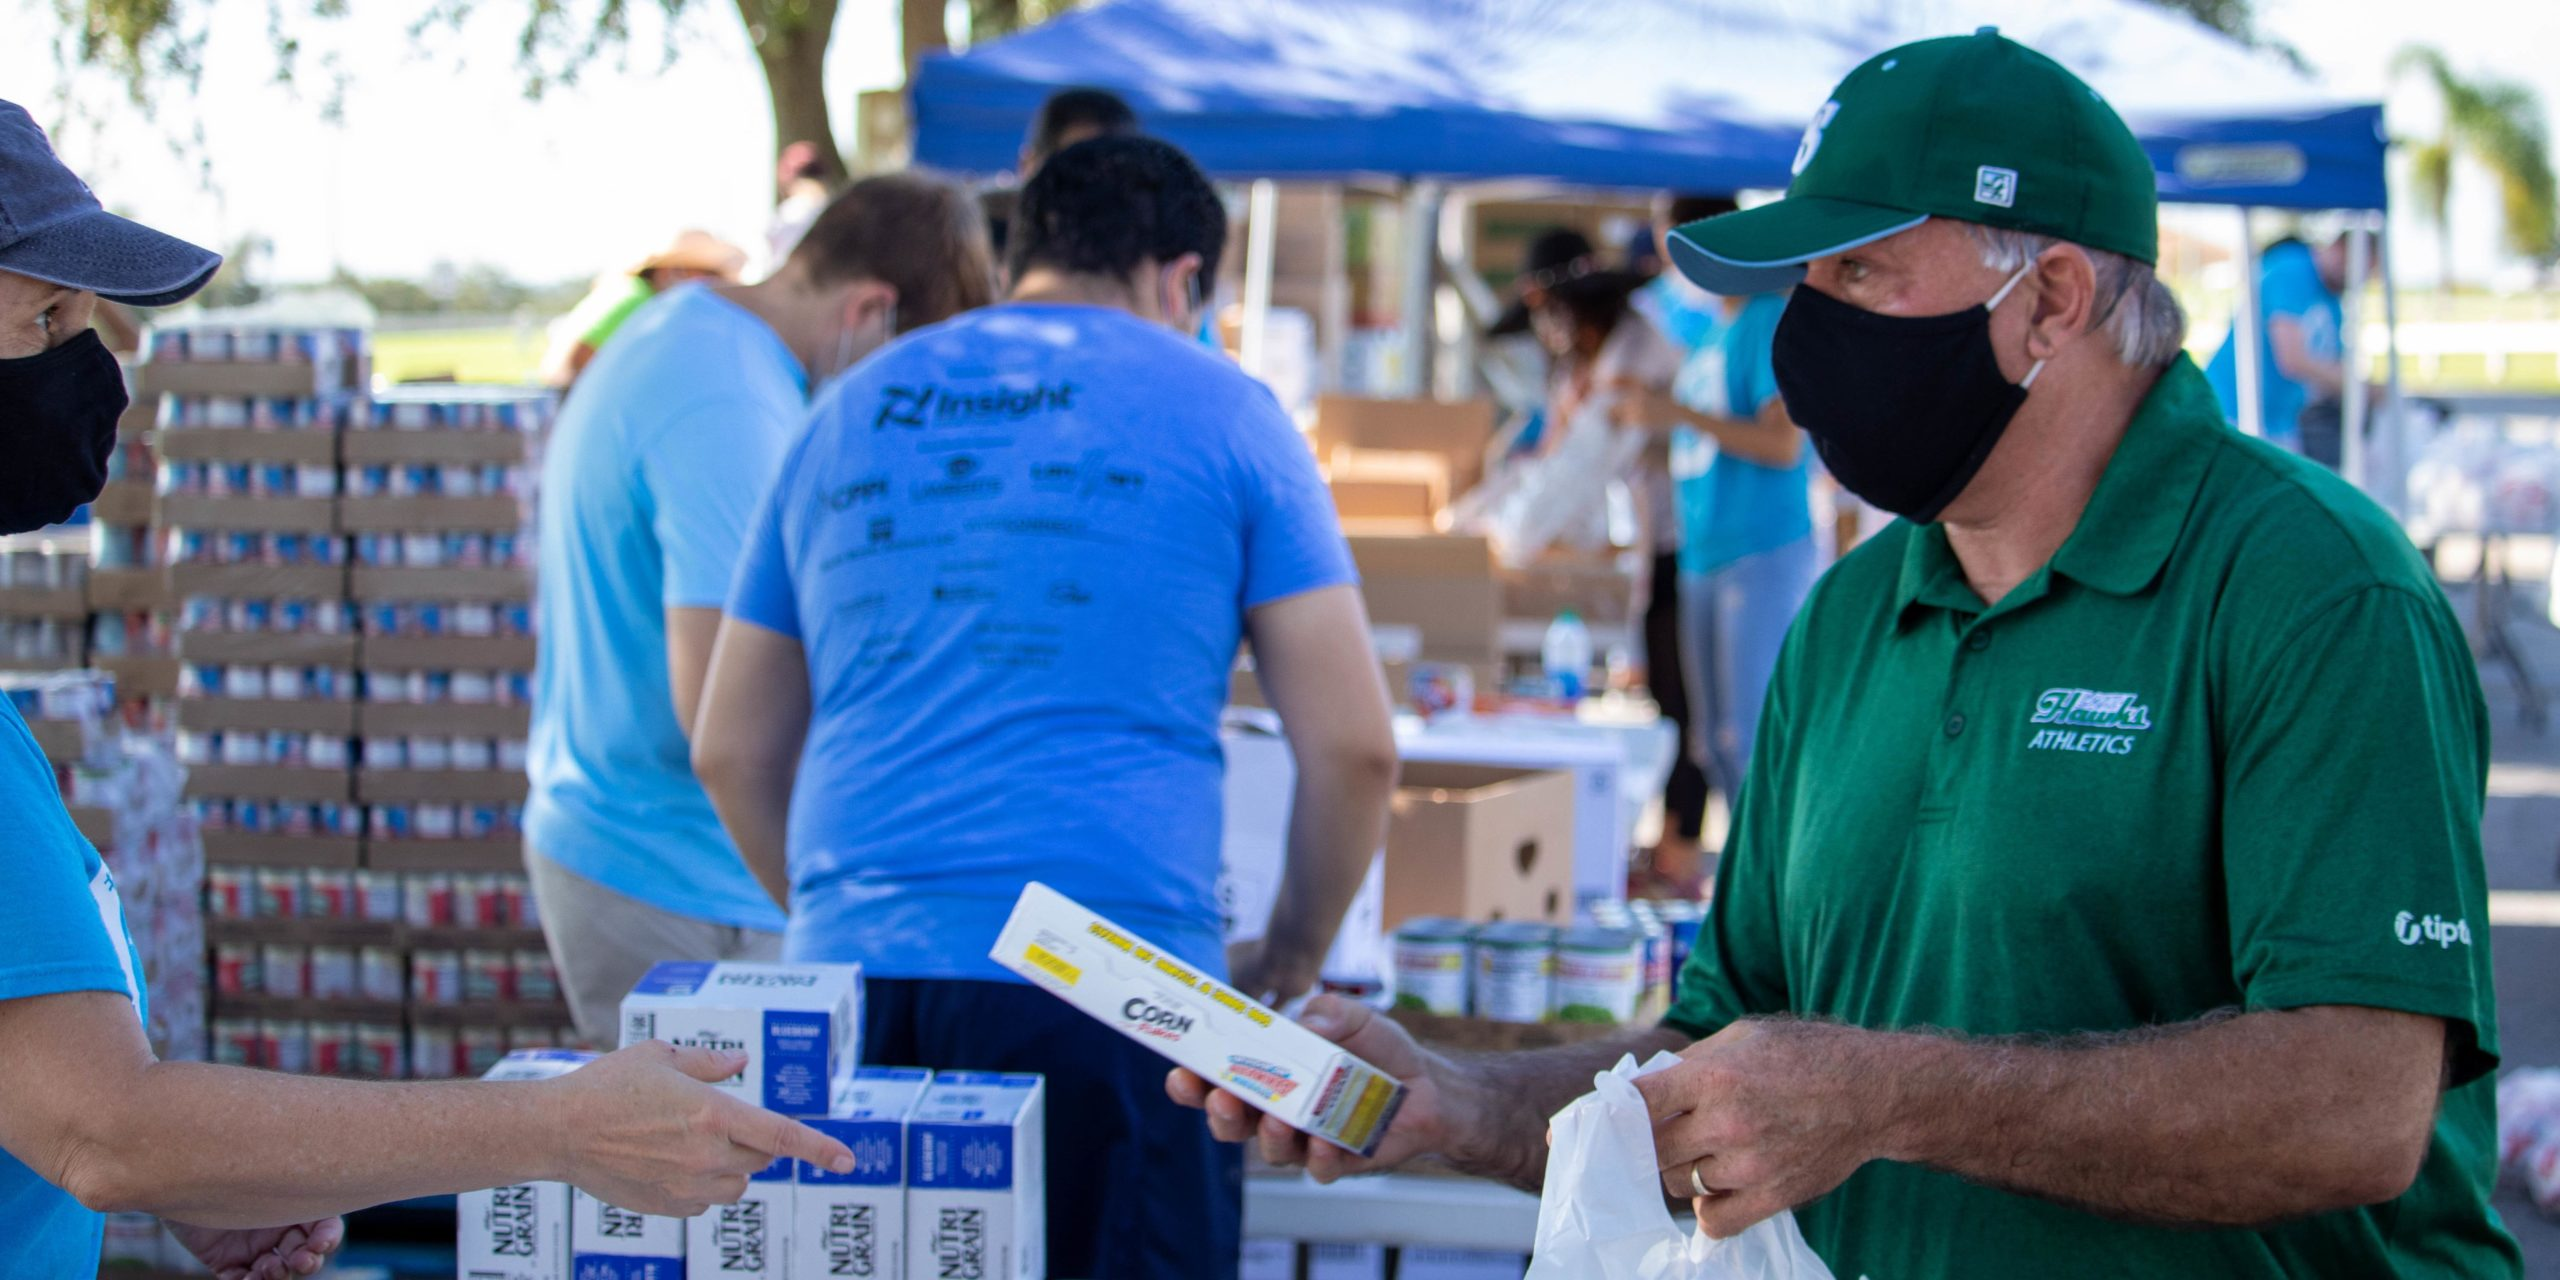 Dr. Sidor packages food at the food distribution event in Clermont